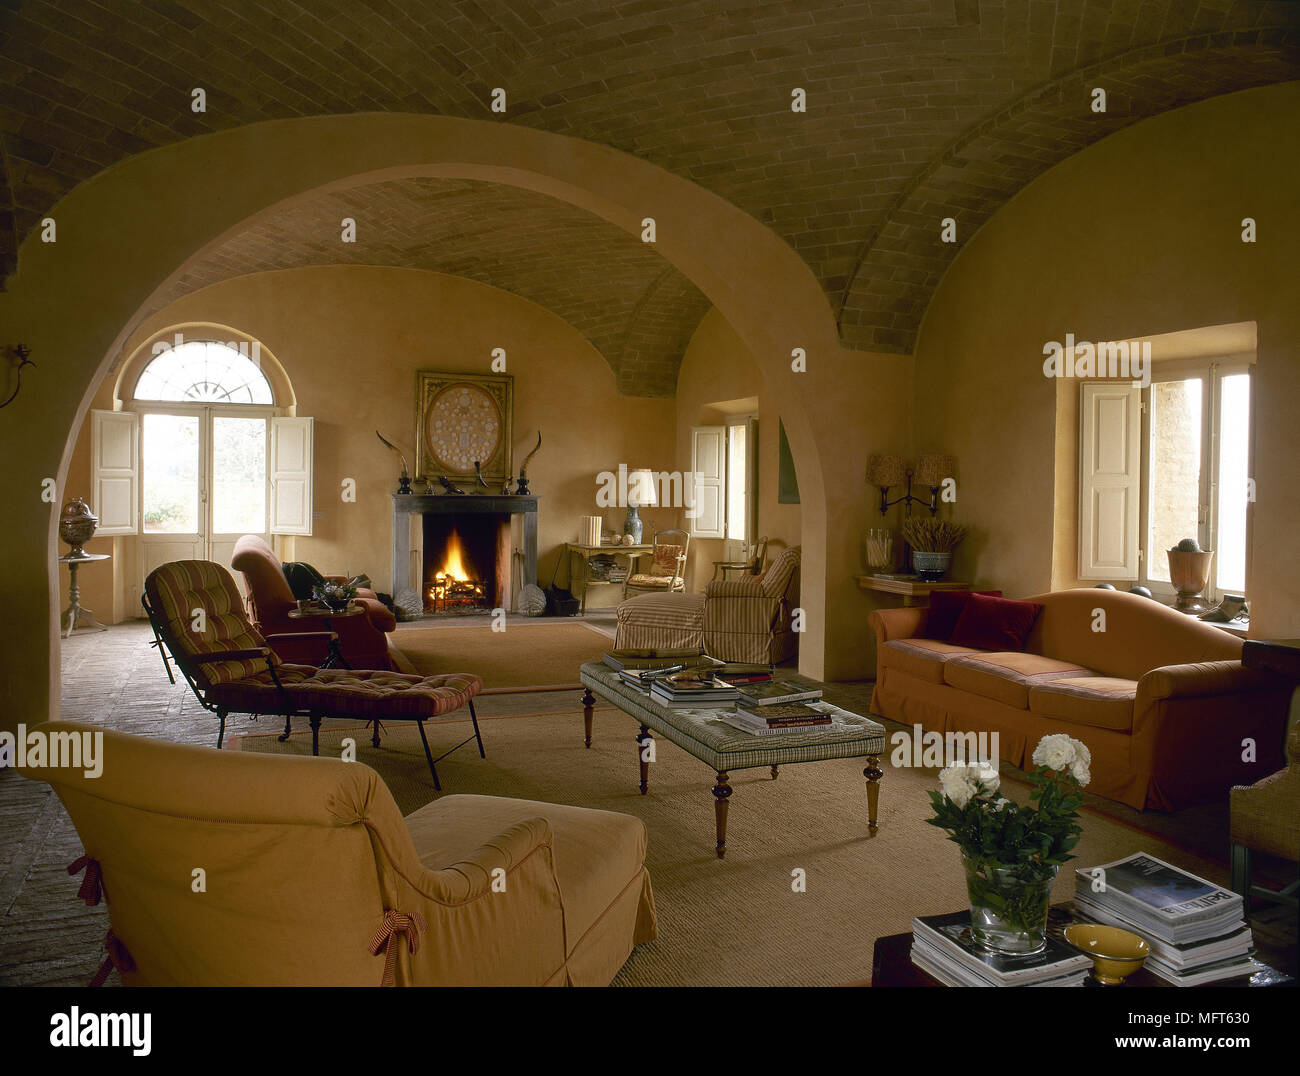 Grand Fireplace W Vaulted Ceilings Beams Open Floor: Fireplace Vaulted Ceiling Stock Photos & Fireplace Vaulted